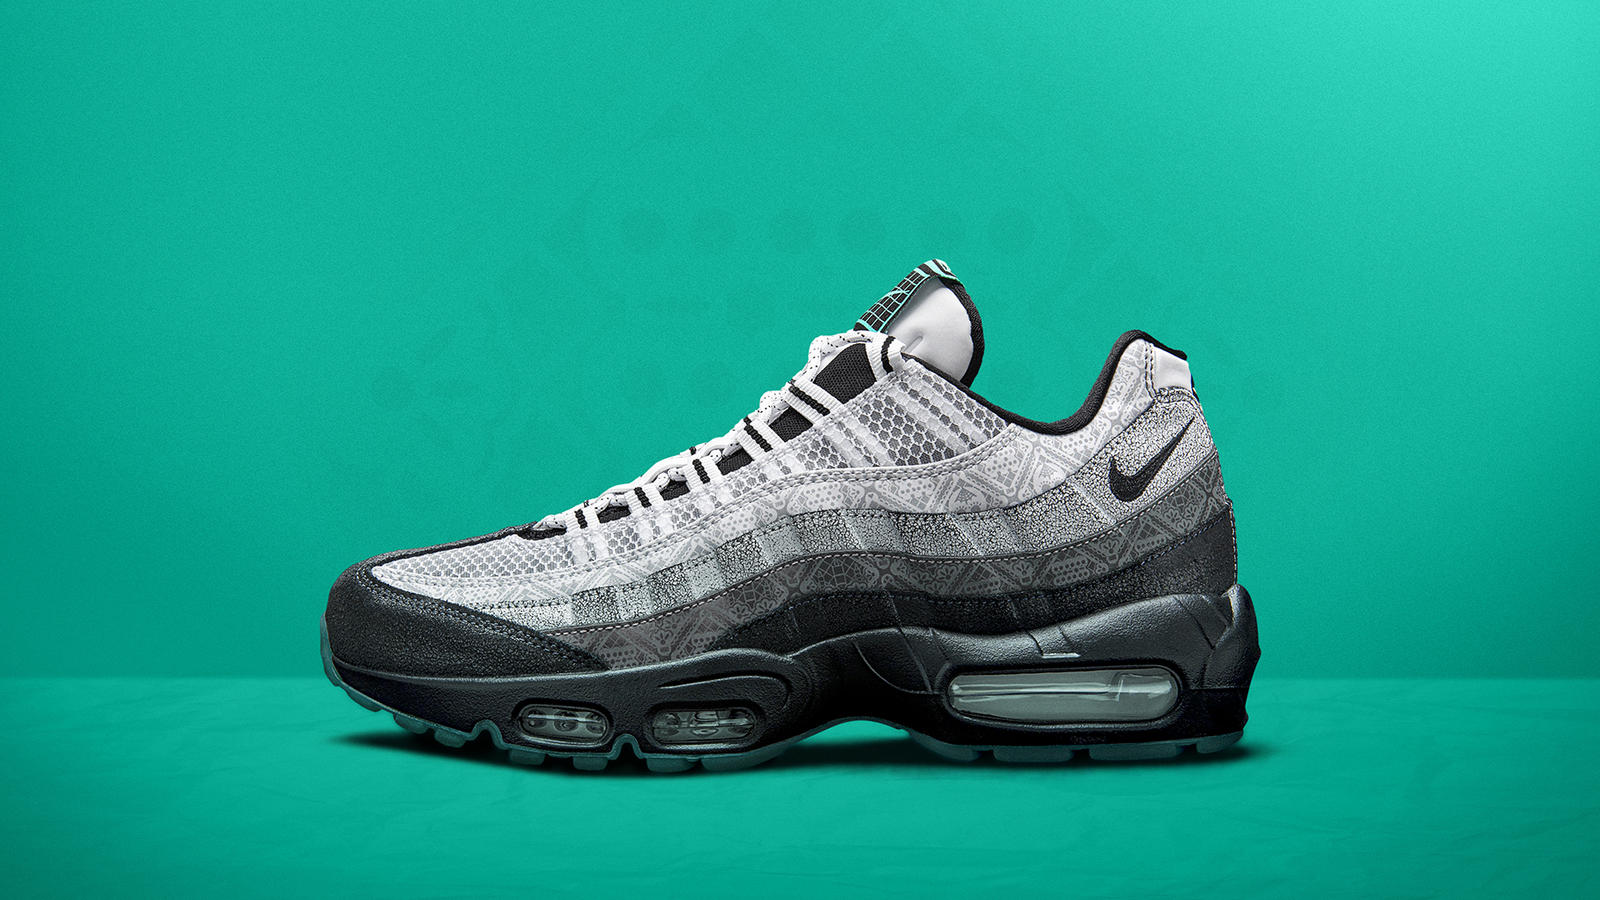 The Nike Air Max 95 Celebrates the Day of the Dead Sneaker